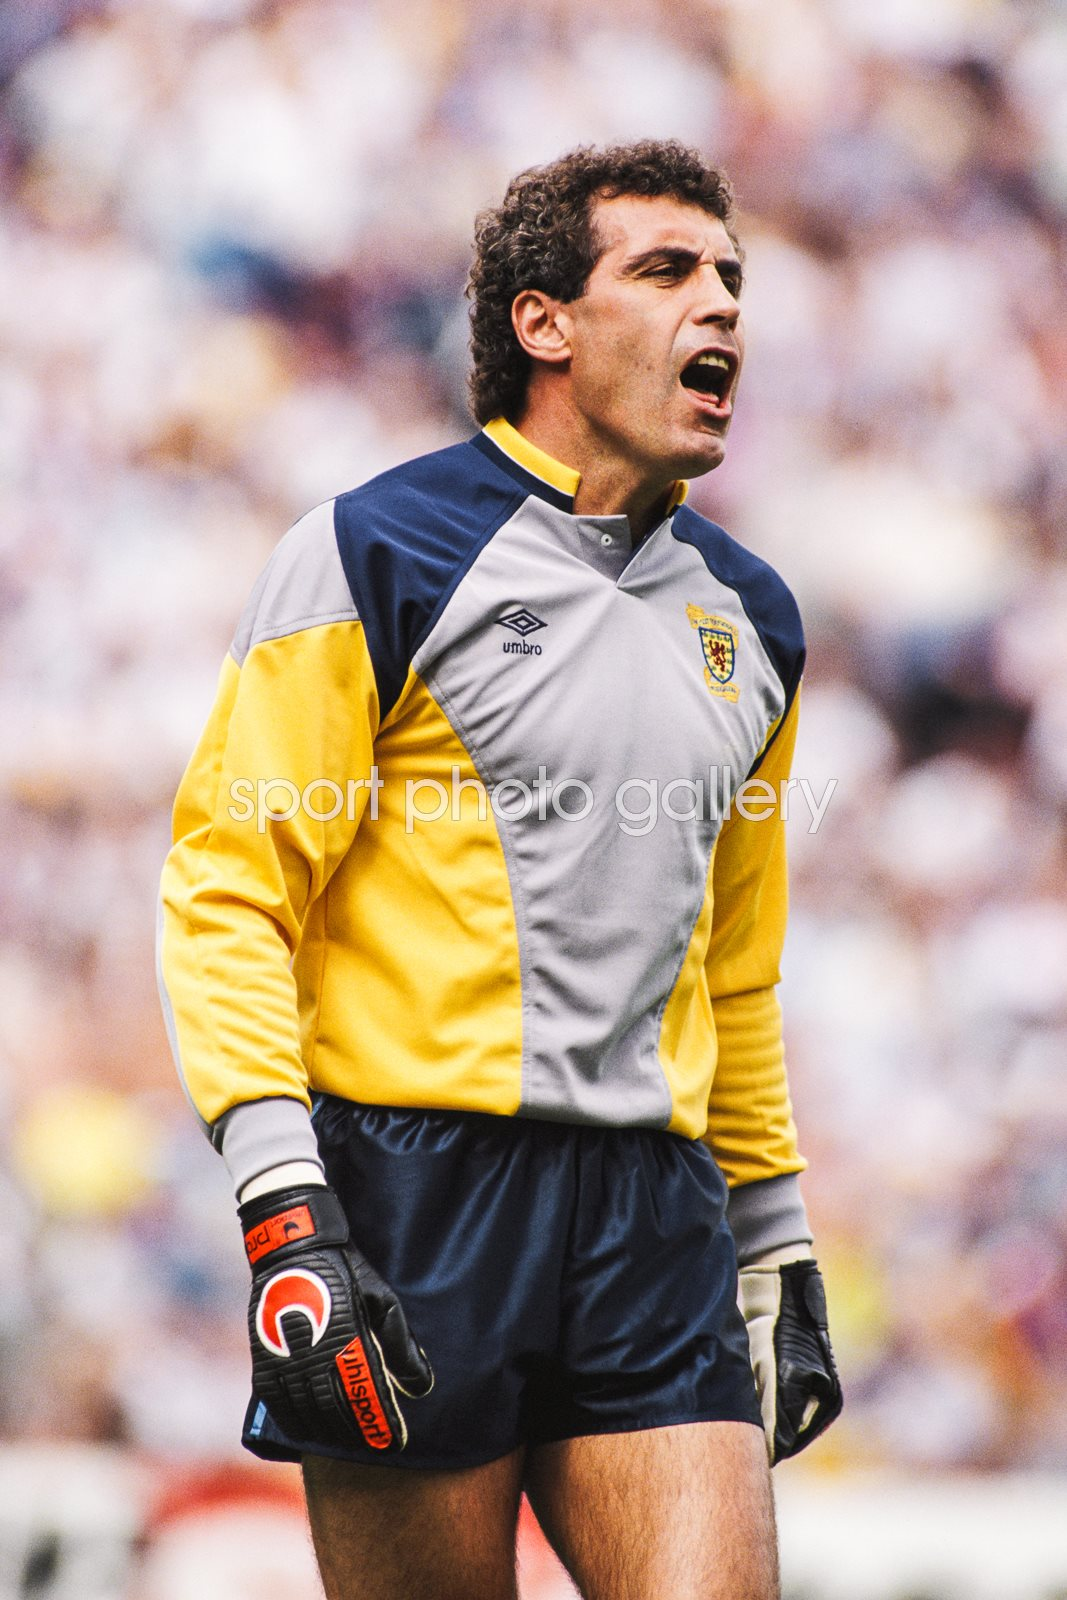 Peter Shilton England goalkeeper wearing a Scotland jersey 1989